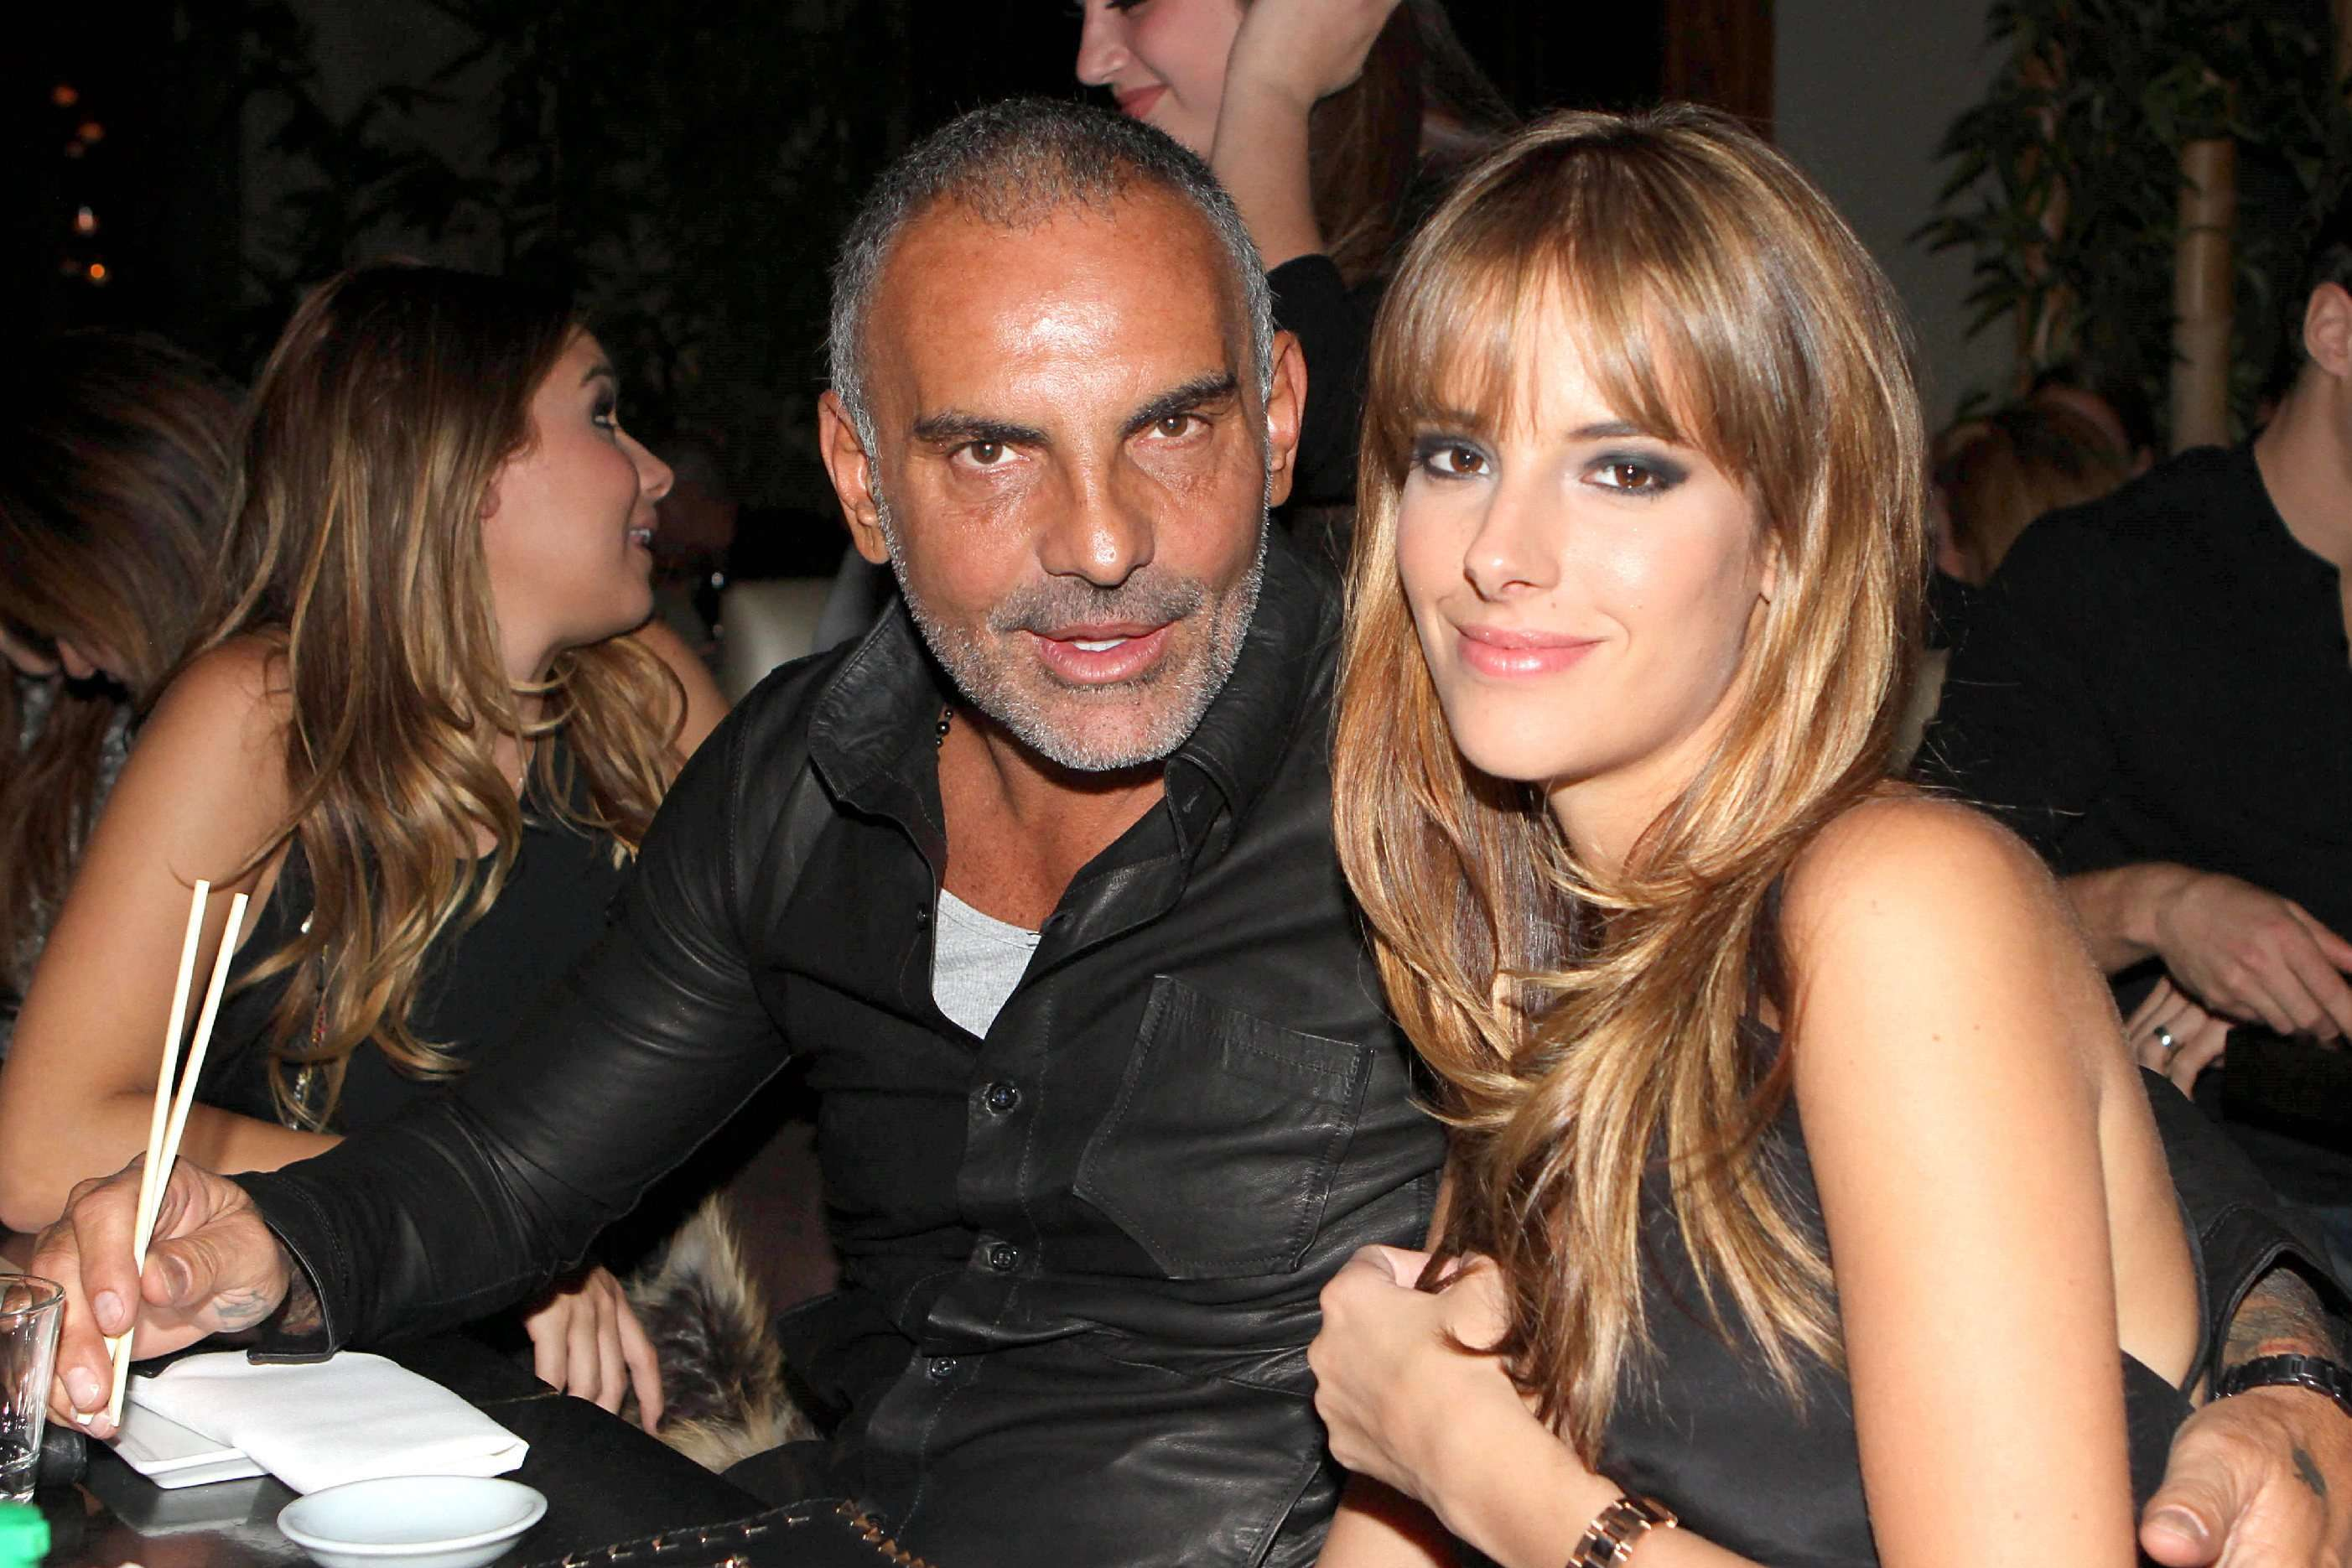 Christian Audigier and Nathalie Sorensen at Koi restaurant celebrating the designer's 19 years old daughter, Crystal Rock Audigier birthday  Los Angeles, California - 20.11.11 Mandatory Credit: BAC/WENN.com/christian_audigier_211111.christian_audigier_0/1111210437